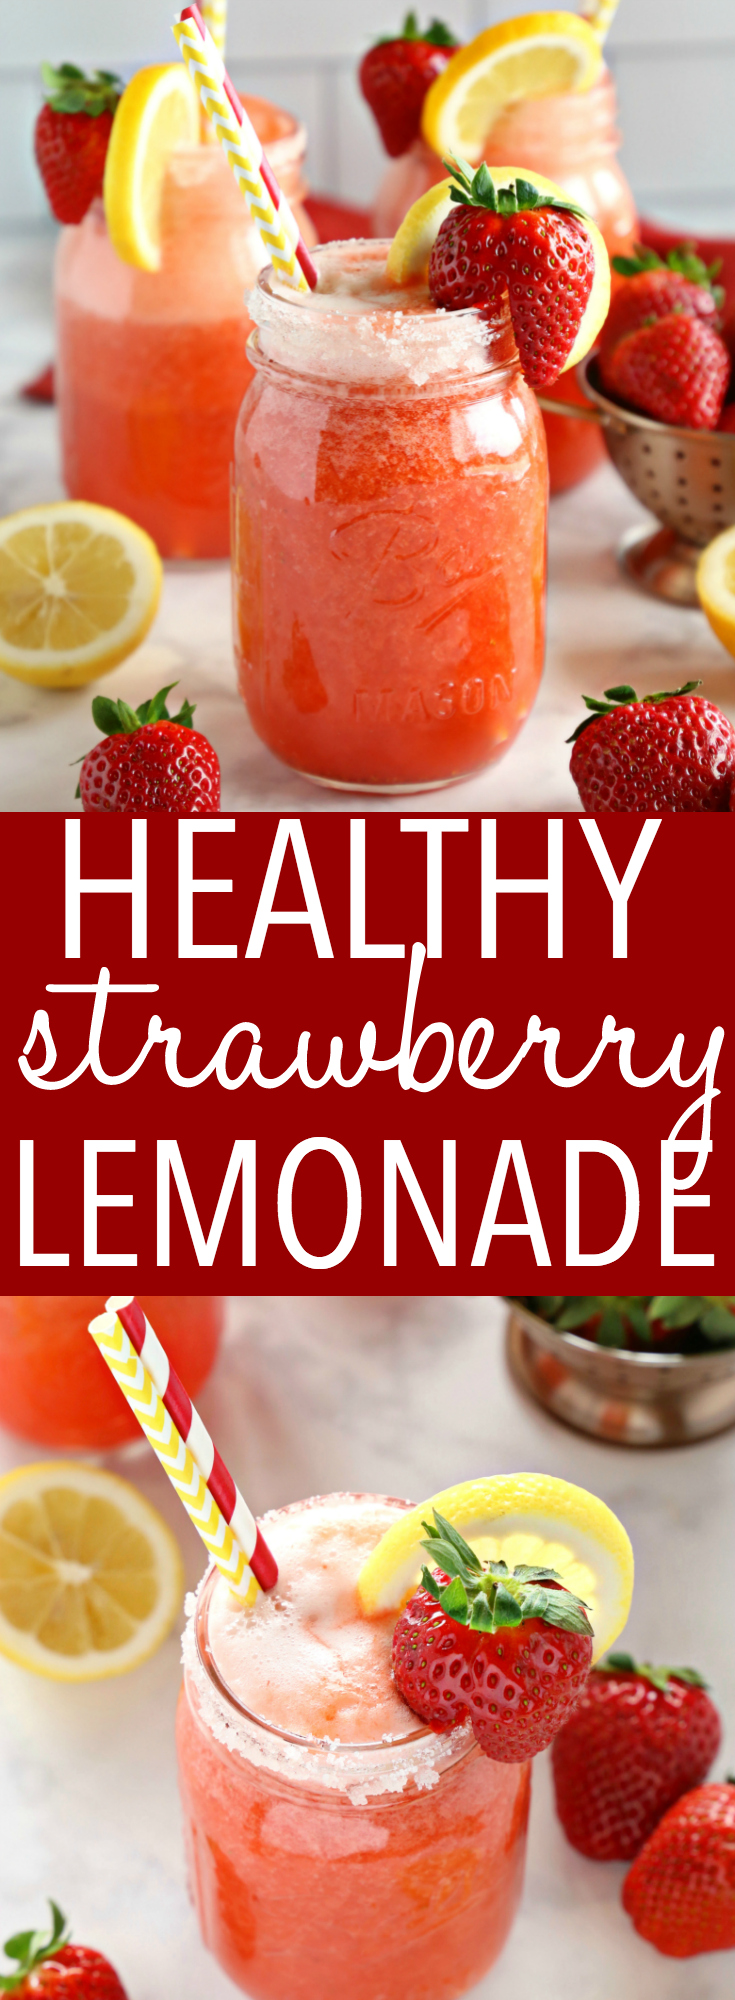 This Healthy Strawberry Lemonade is the perfect naturally-sweetened refreshing drink for summer! It's made from blended strawberries, fresh lemon juice and honey, so it's the perfect healthy refreshment for warm days and summer parties! Recipe from thebusybaker.ca! #healthylemonade #sugarfreelemonade #diabeticlemonade via @busybakerblog